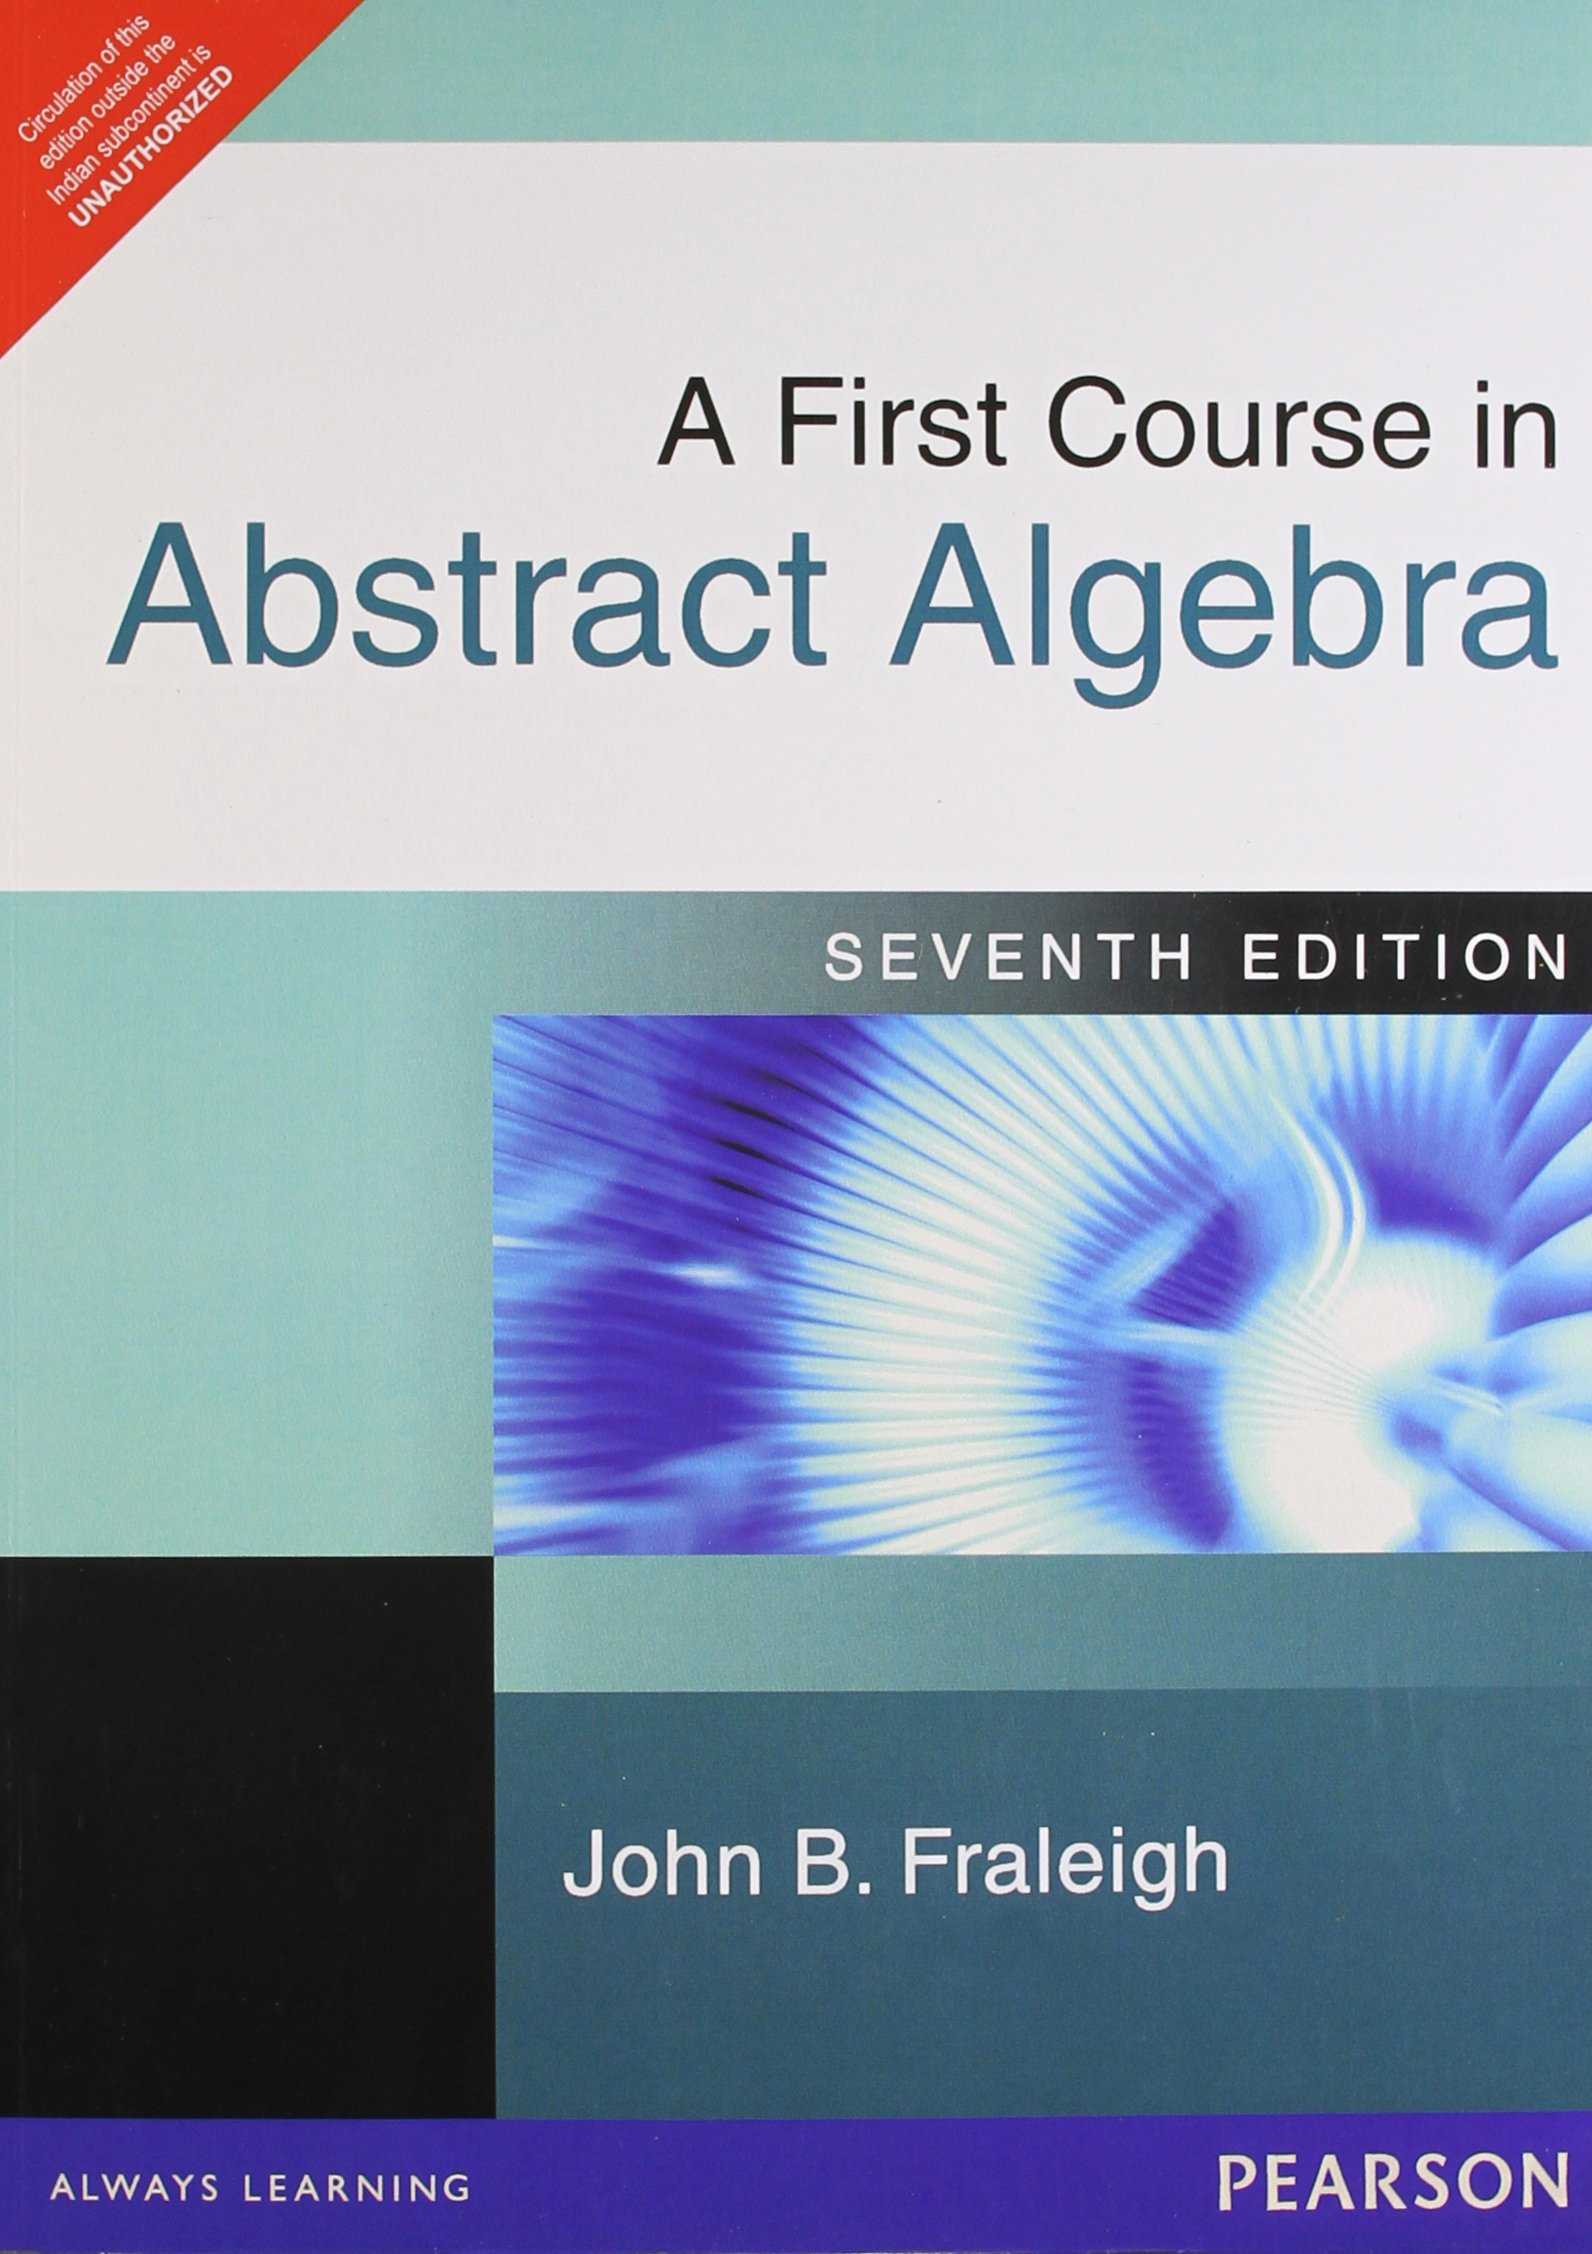 Buy a first course in abstract algebra 7th edition book online at buy a first course in abstract algebra 7th edition book online at low prices in india a first course in abstract algebra 7th edition reviews ratings fandeluxe Image collections